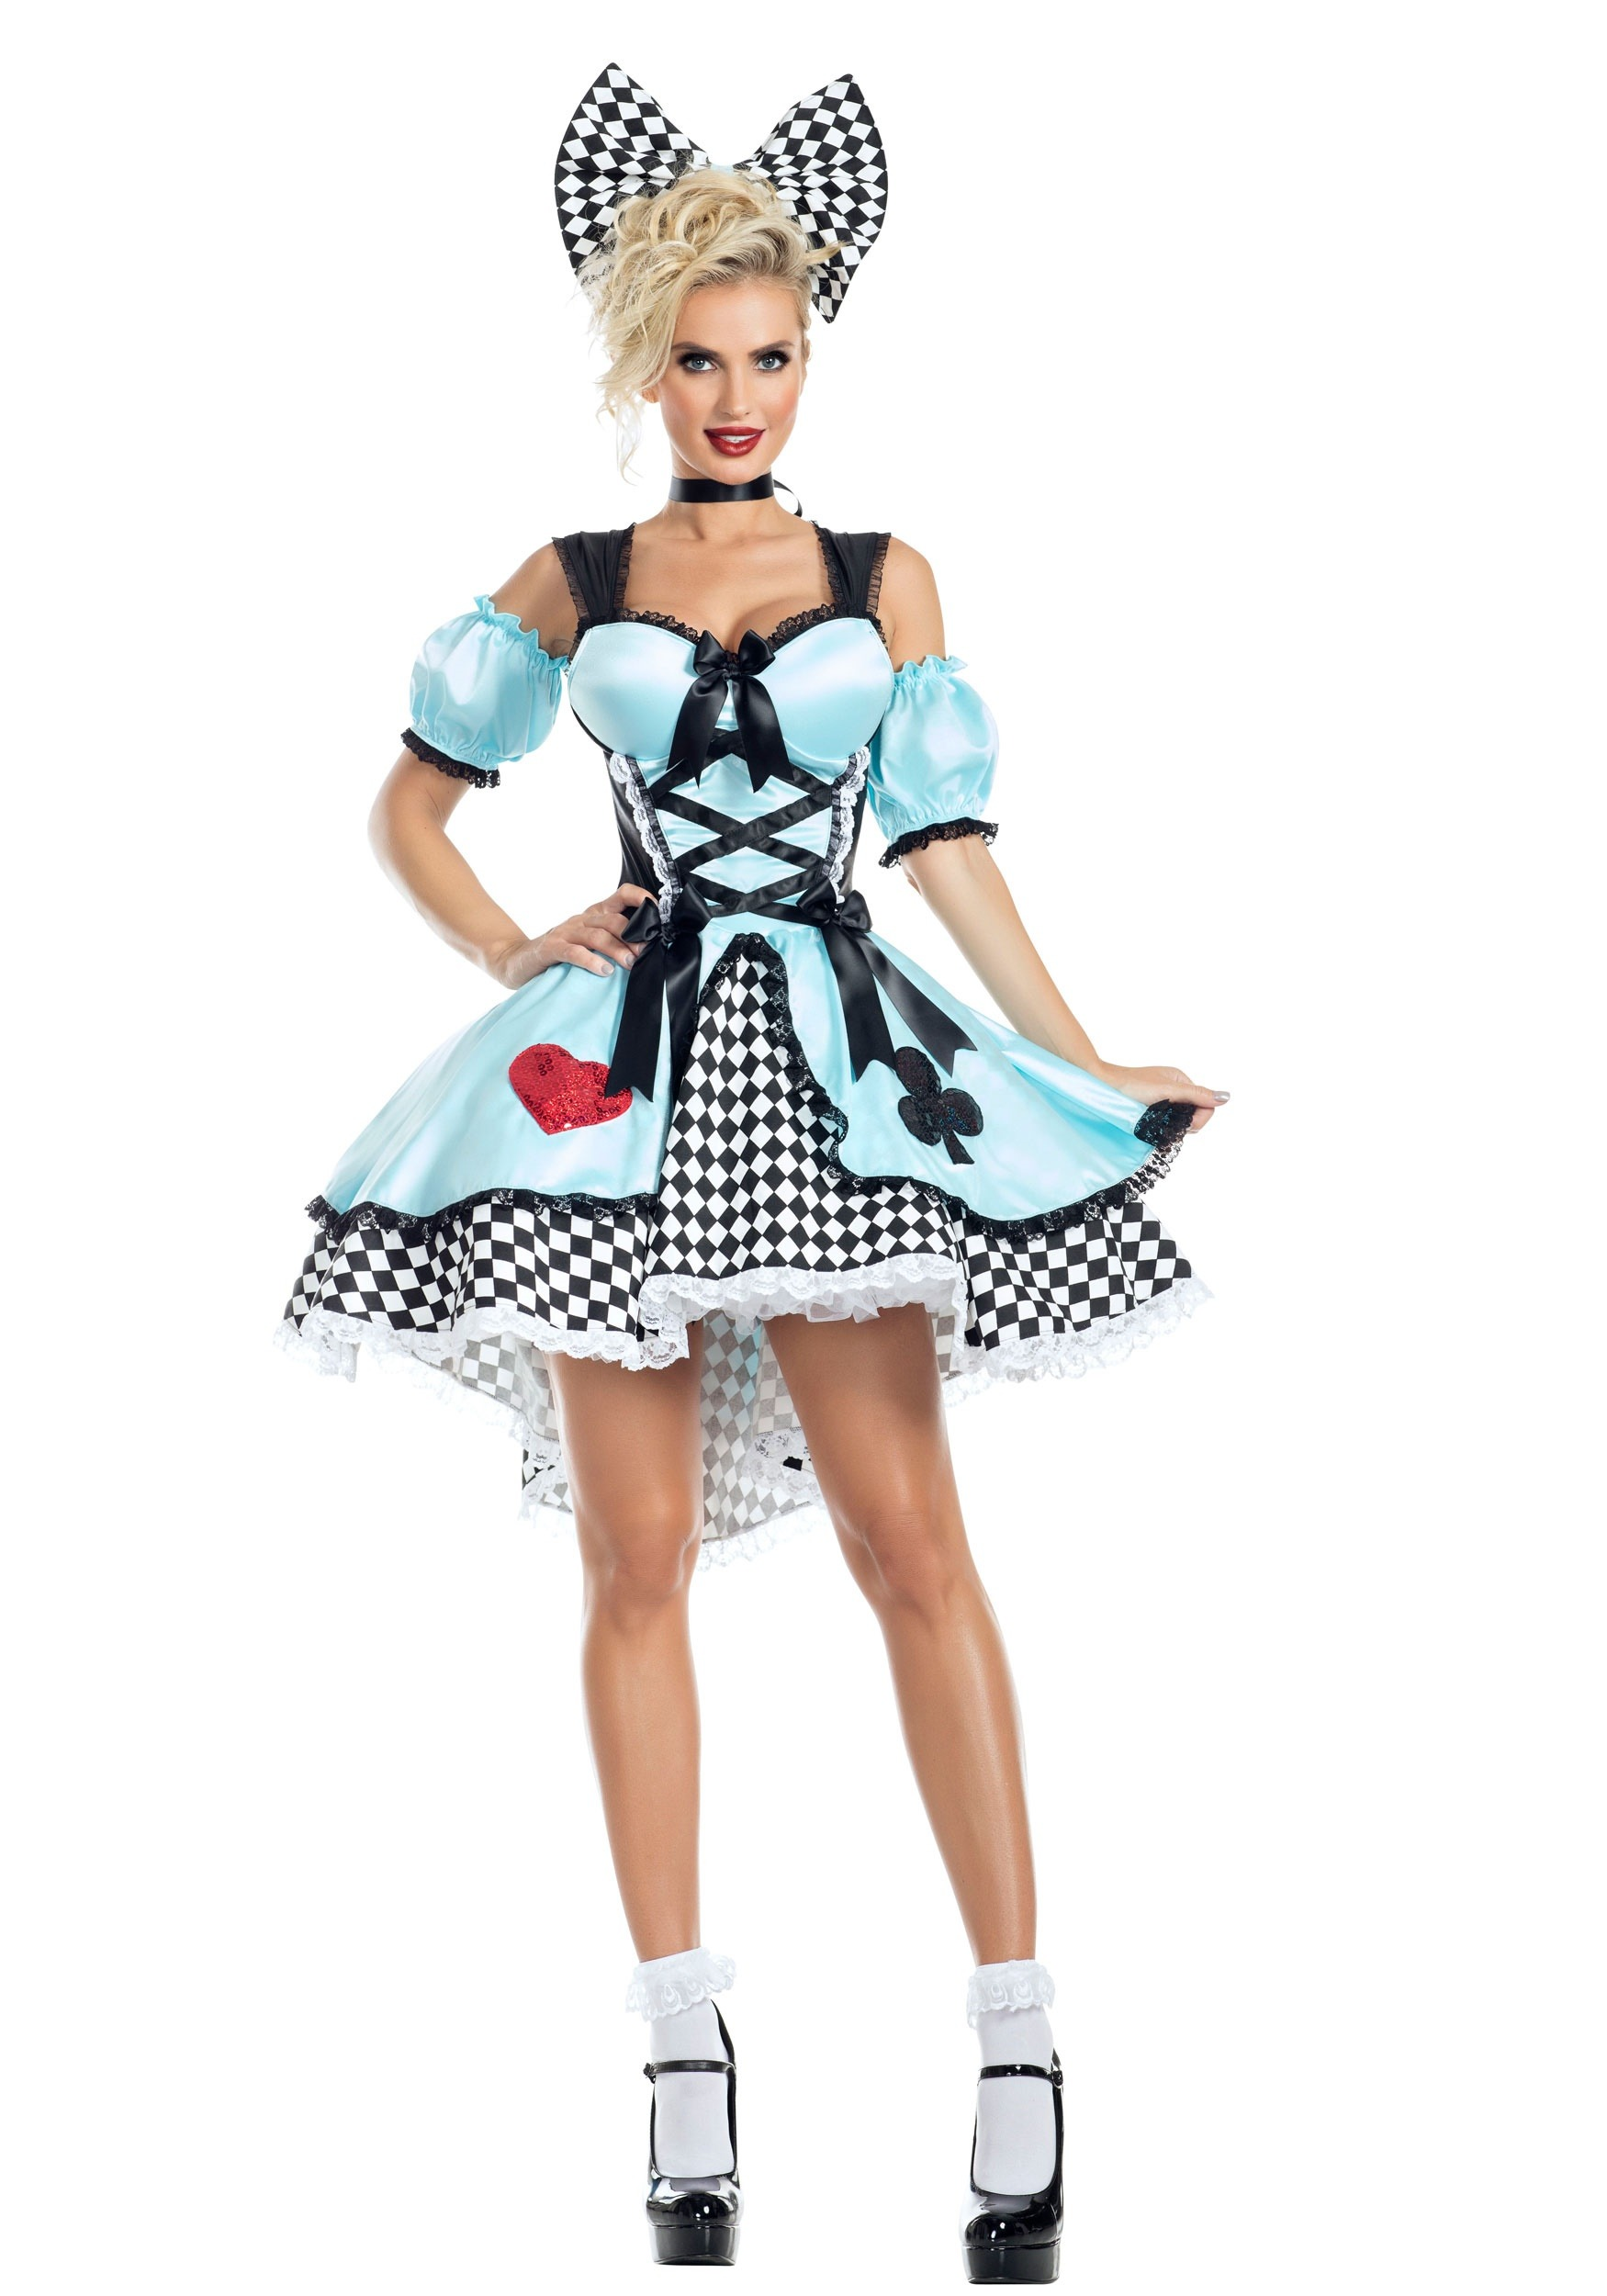 INOpets.com Anything for Pets Parents & Their Pets Flirtatious Alice Costume for Women